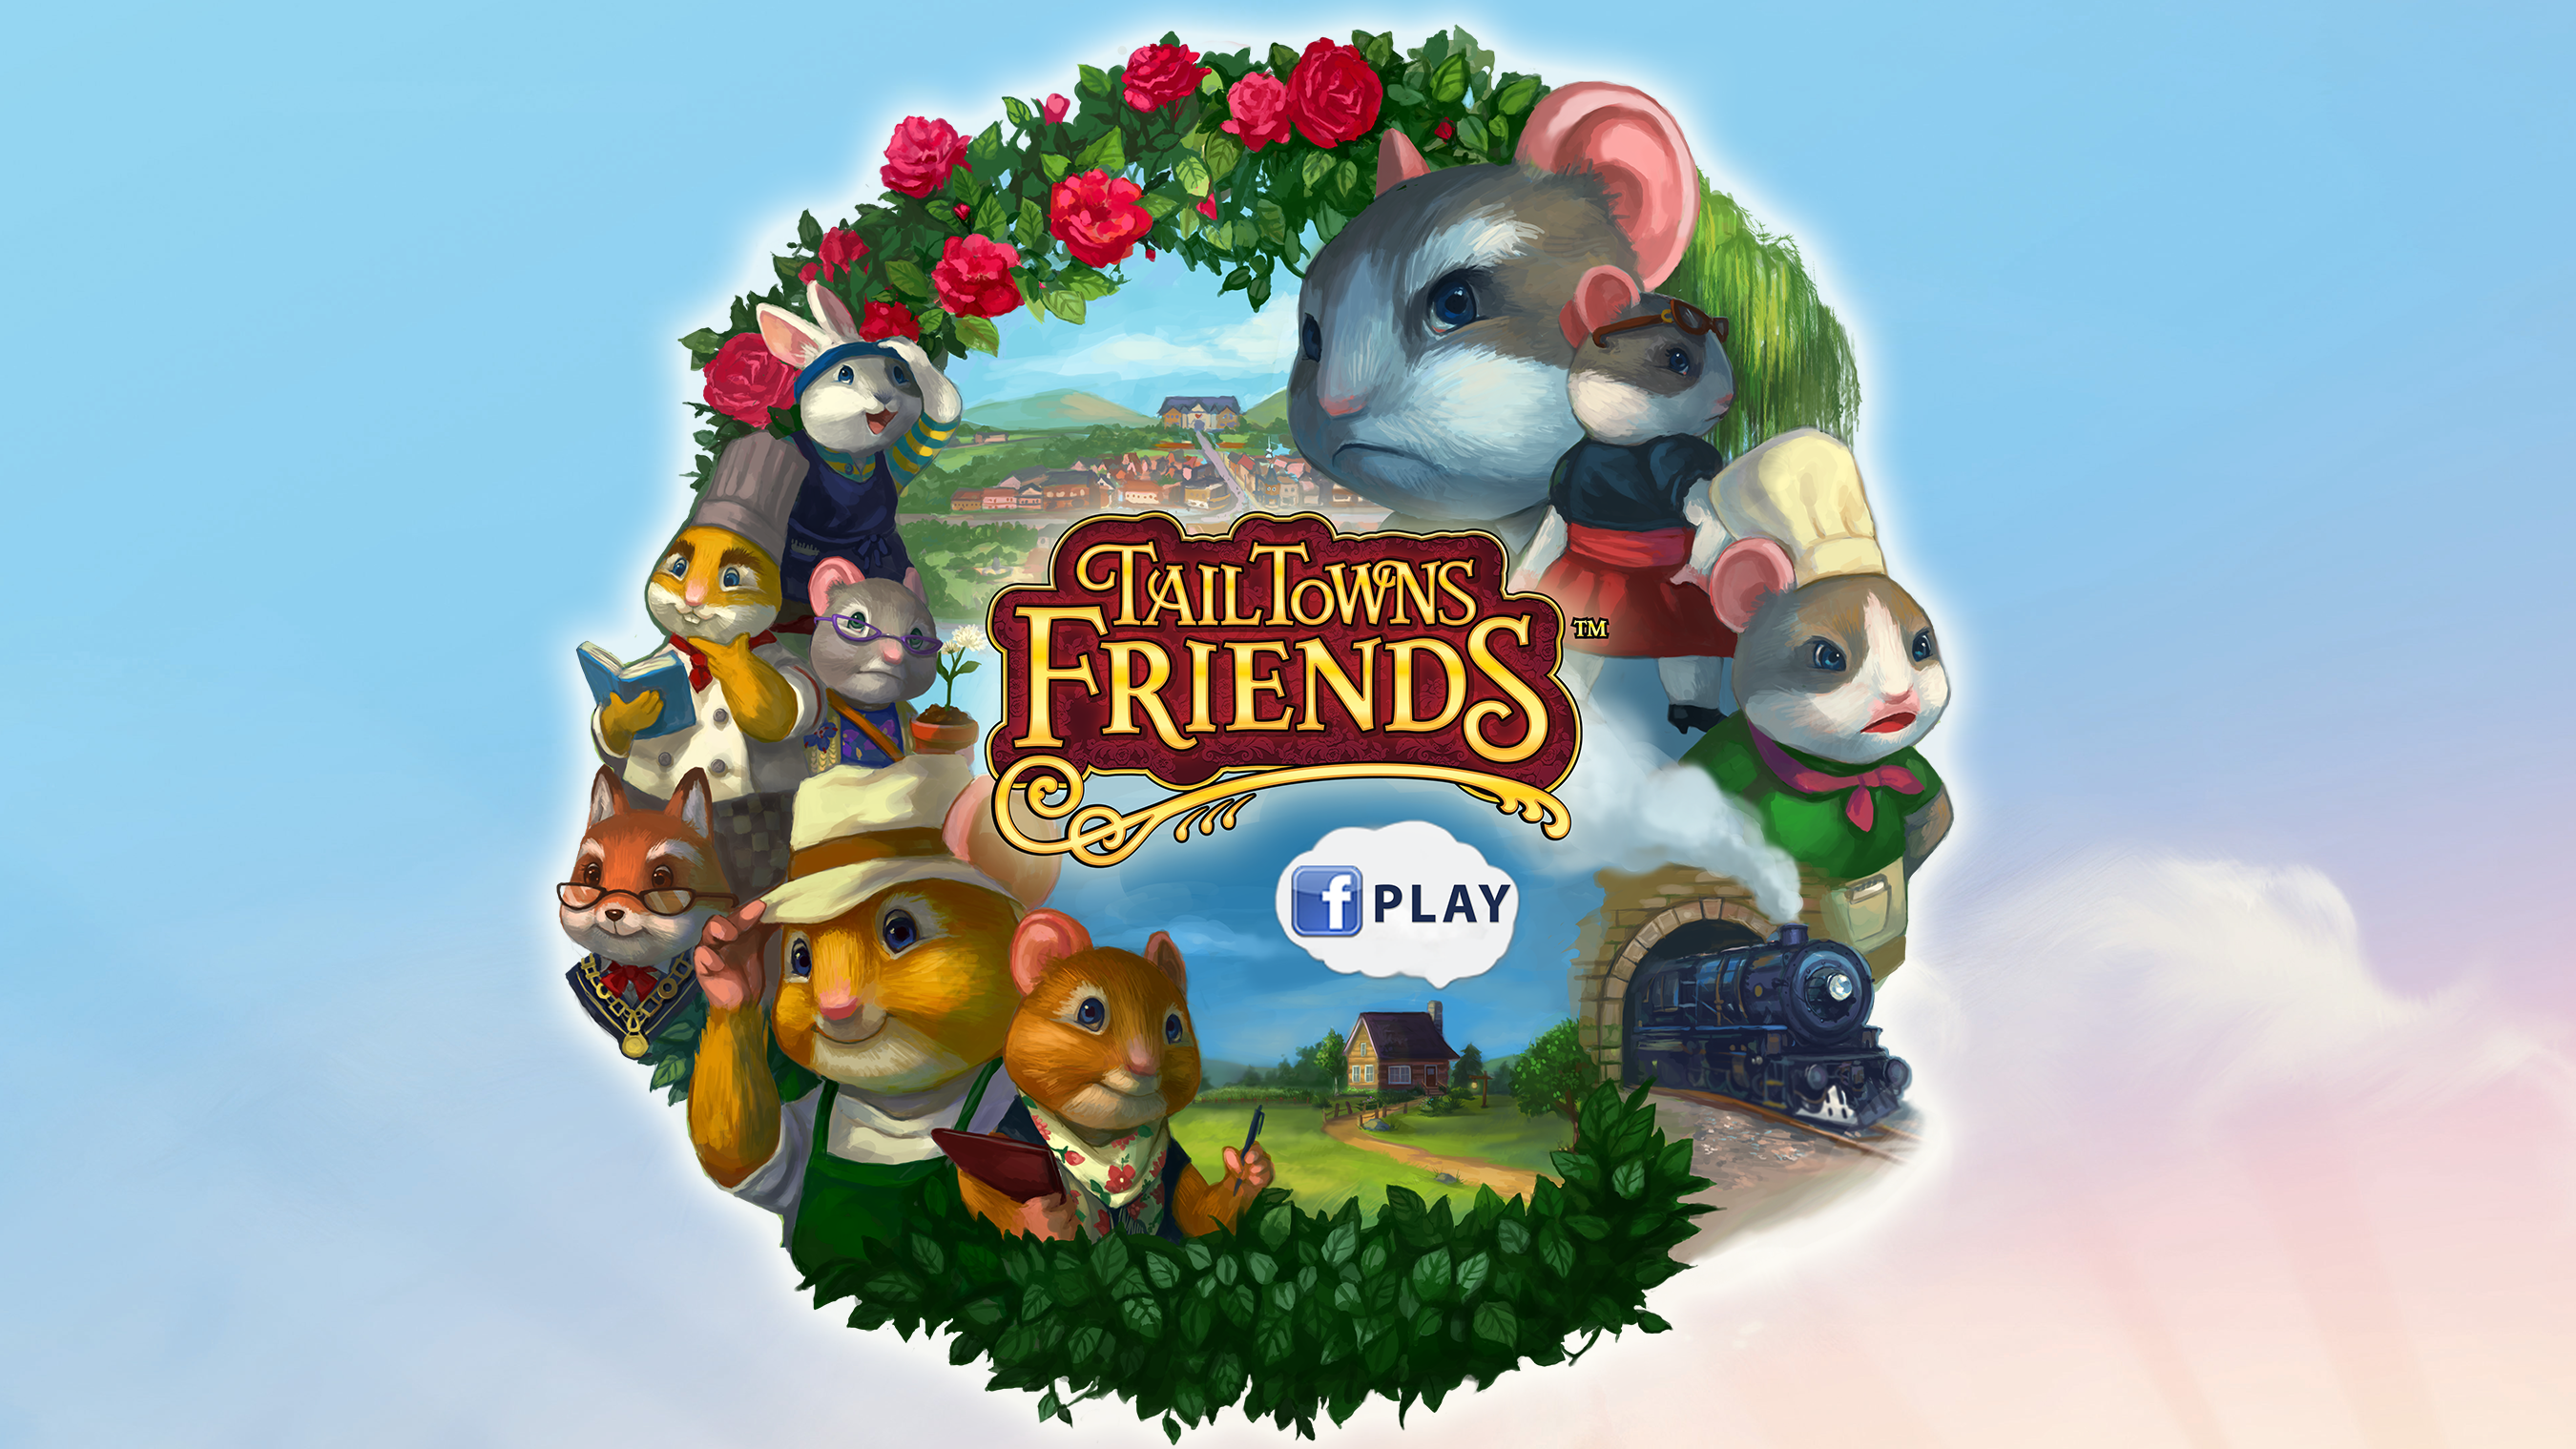 There's a NEW Facebook game in town: Tail Towns Friends by Ganz